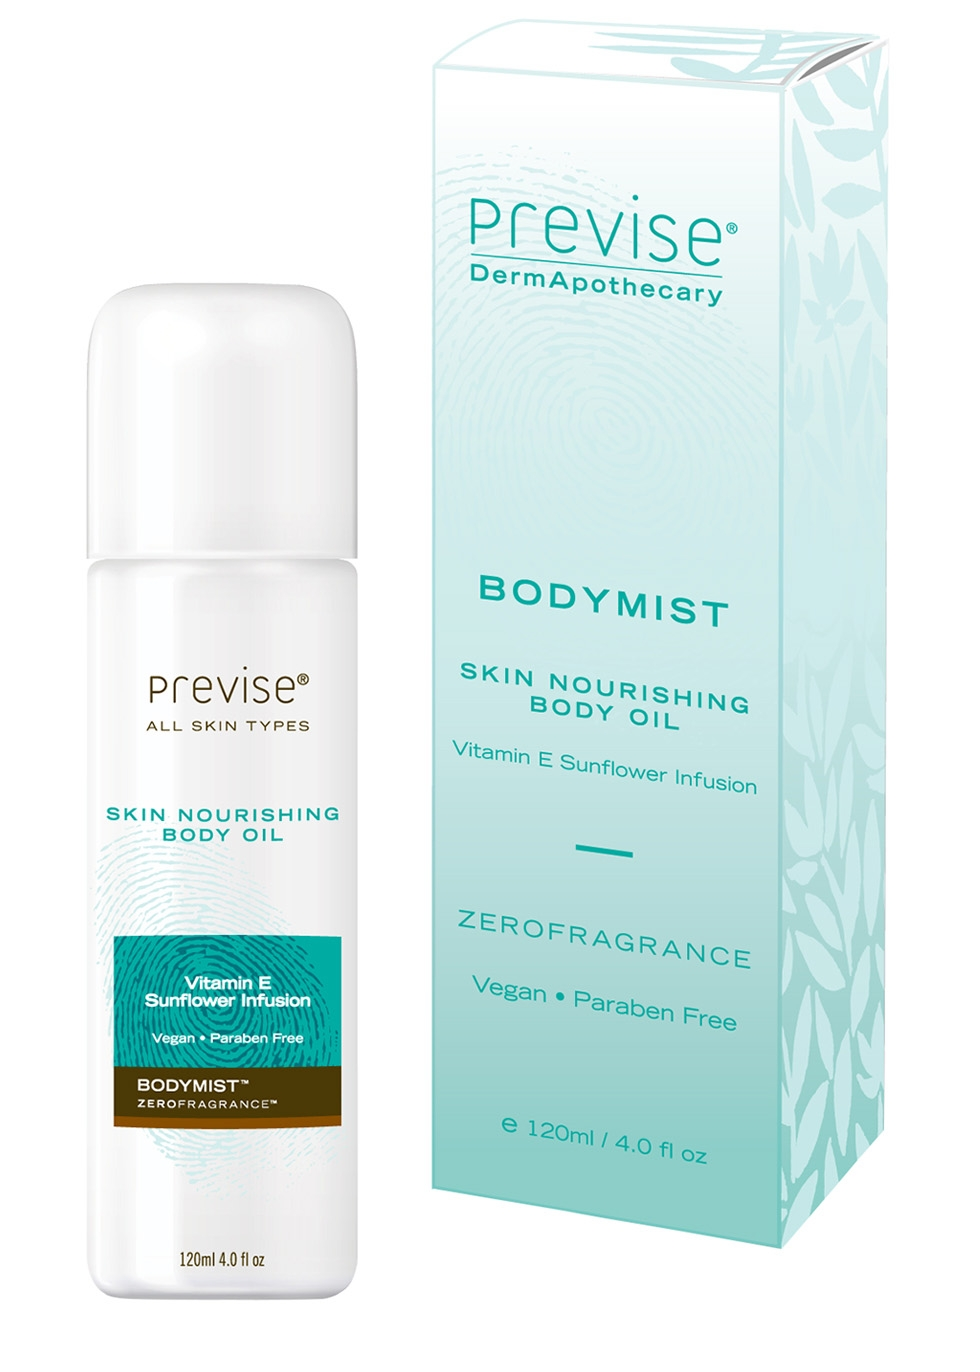 Previse BodyMist Nourishing Body Oil, £21